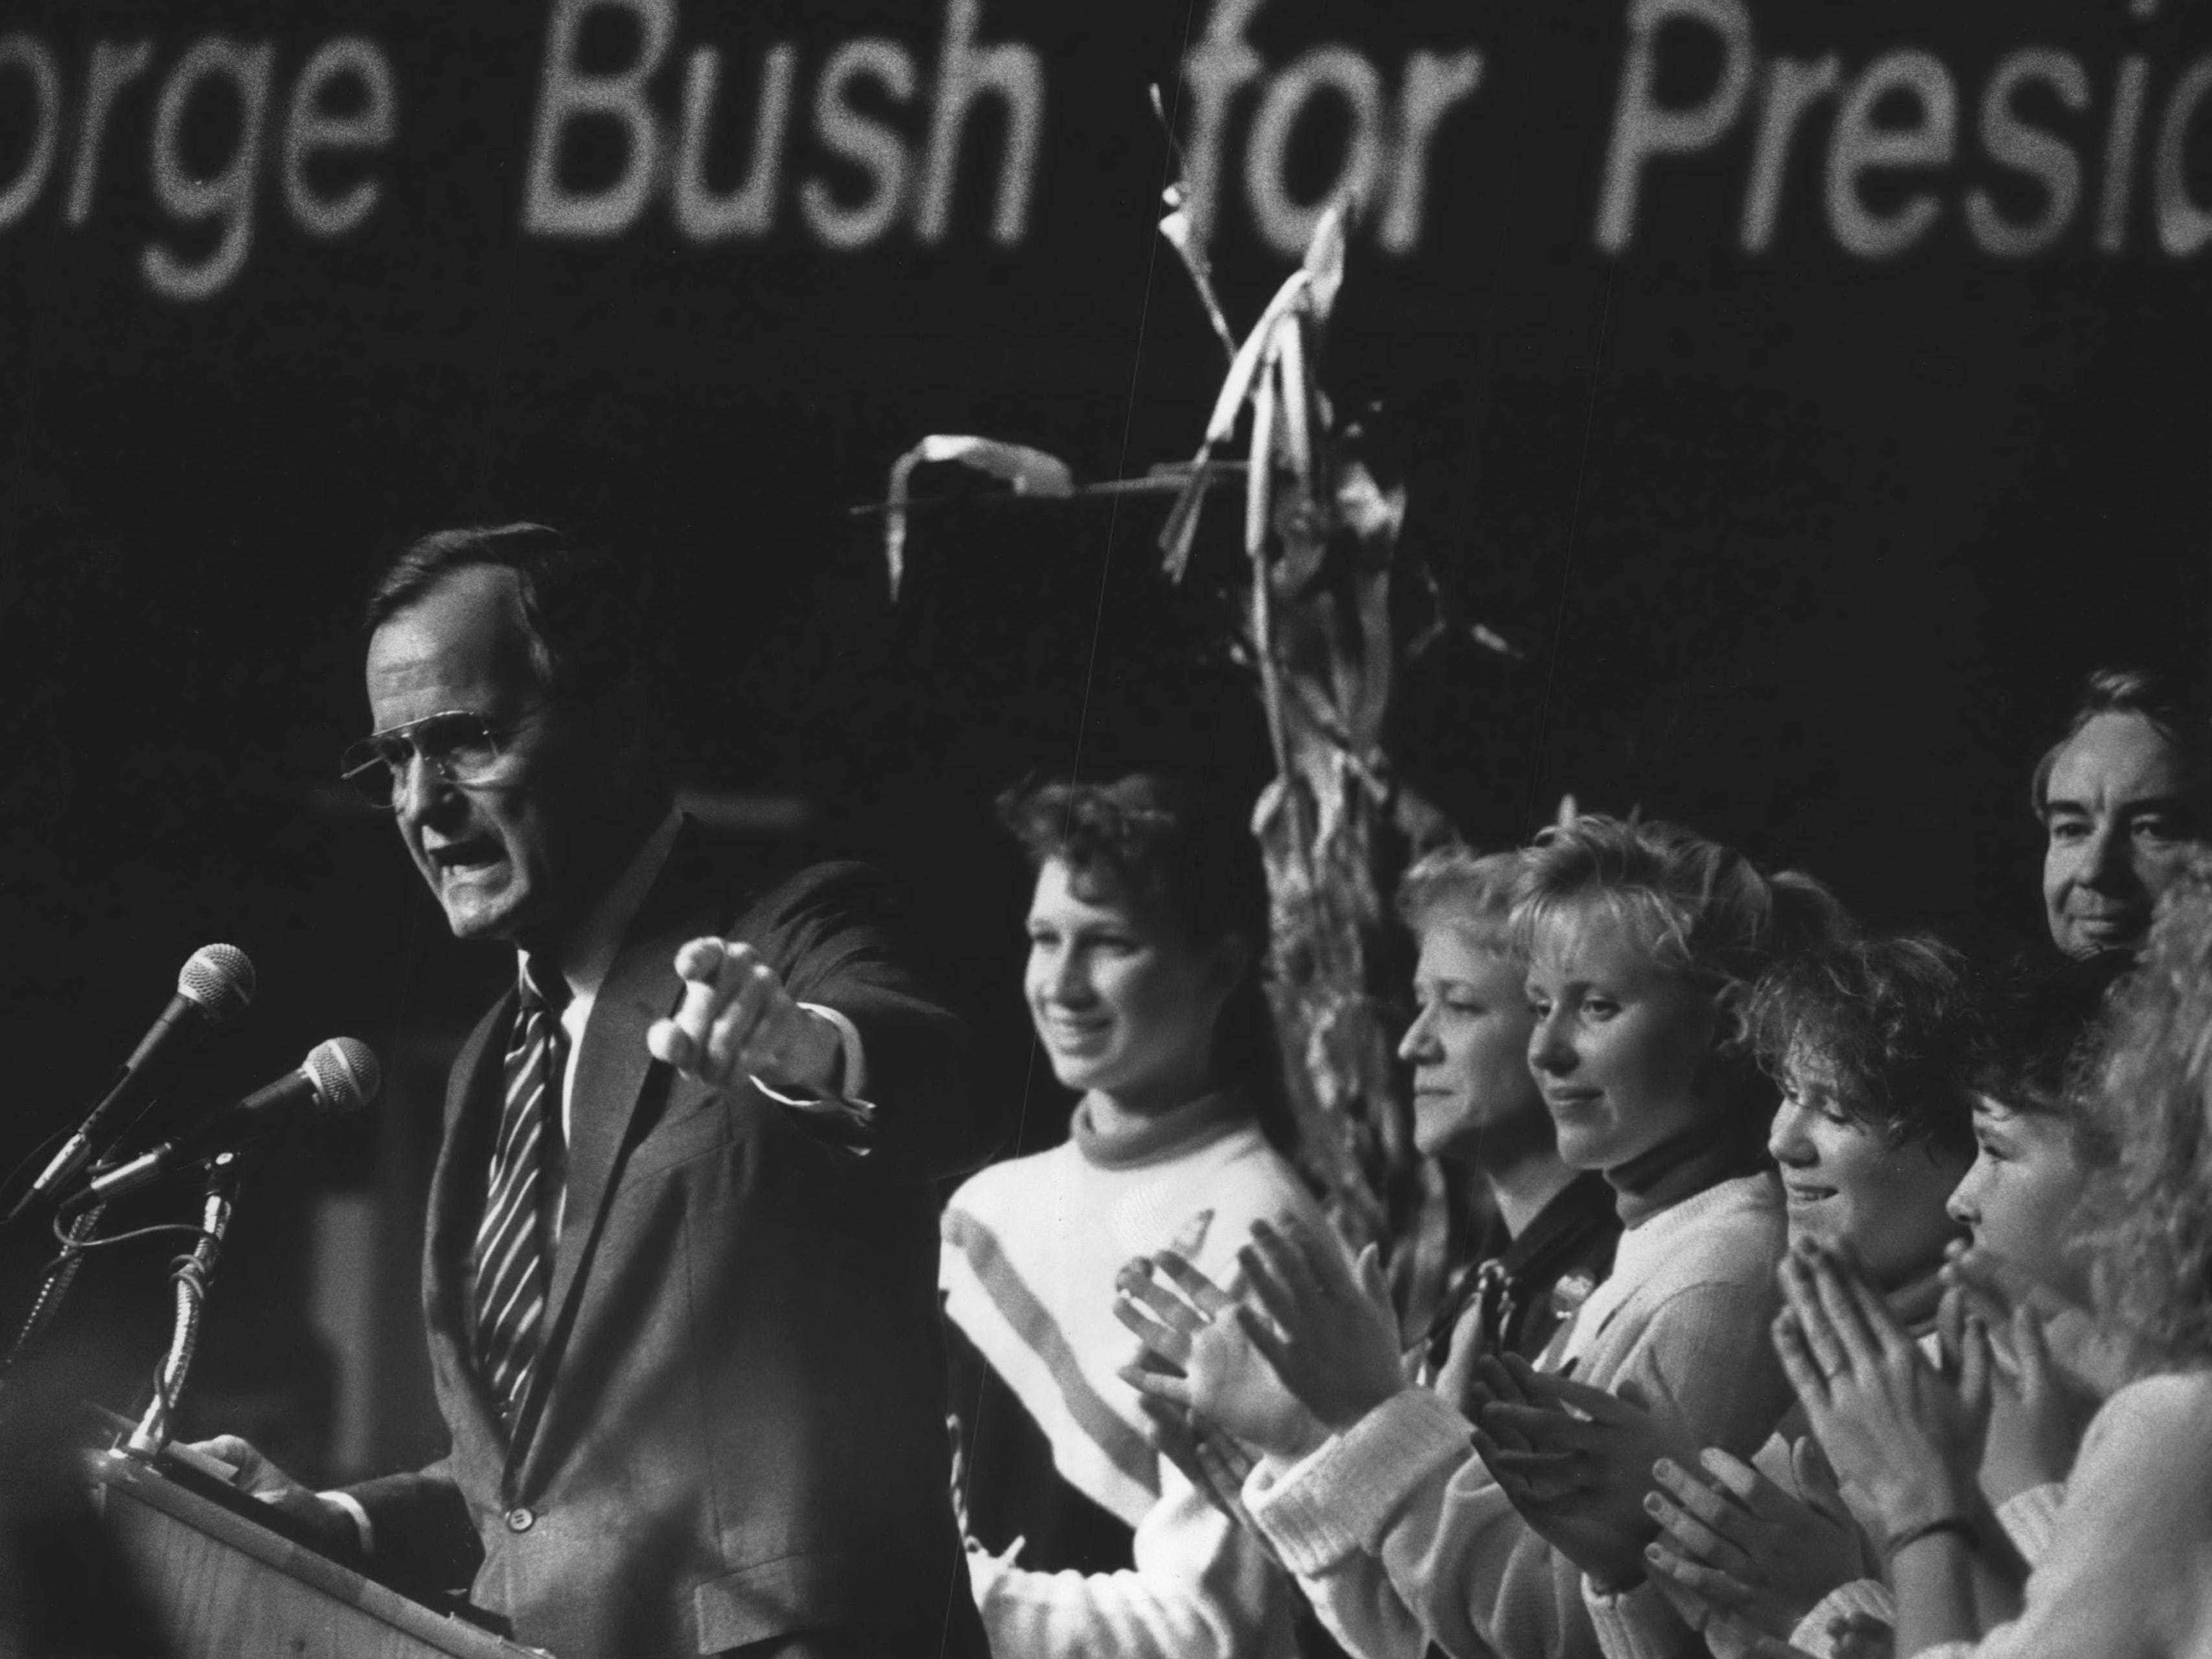 Vice President George Bush gestures during a 1988 campaign appearance at the Waukesha County Exposition Center in Pewaukee.